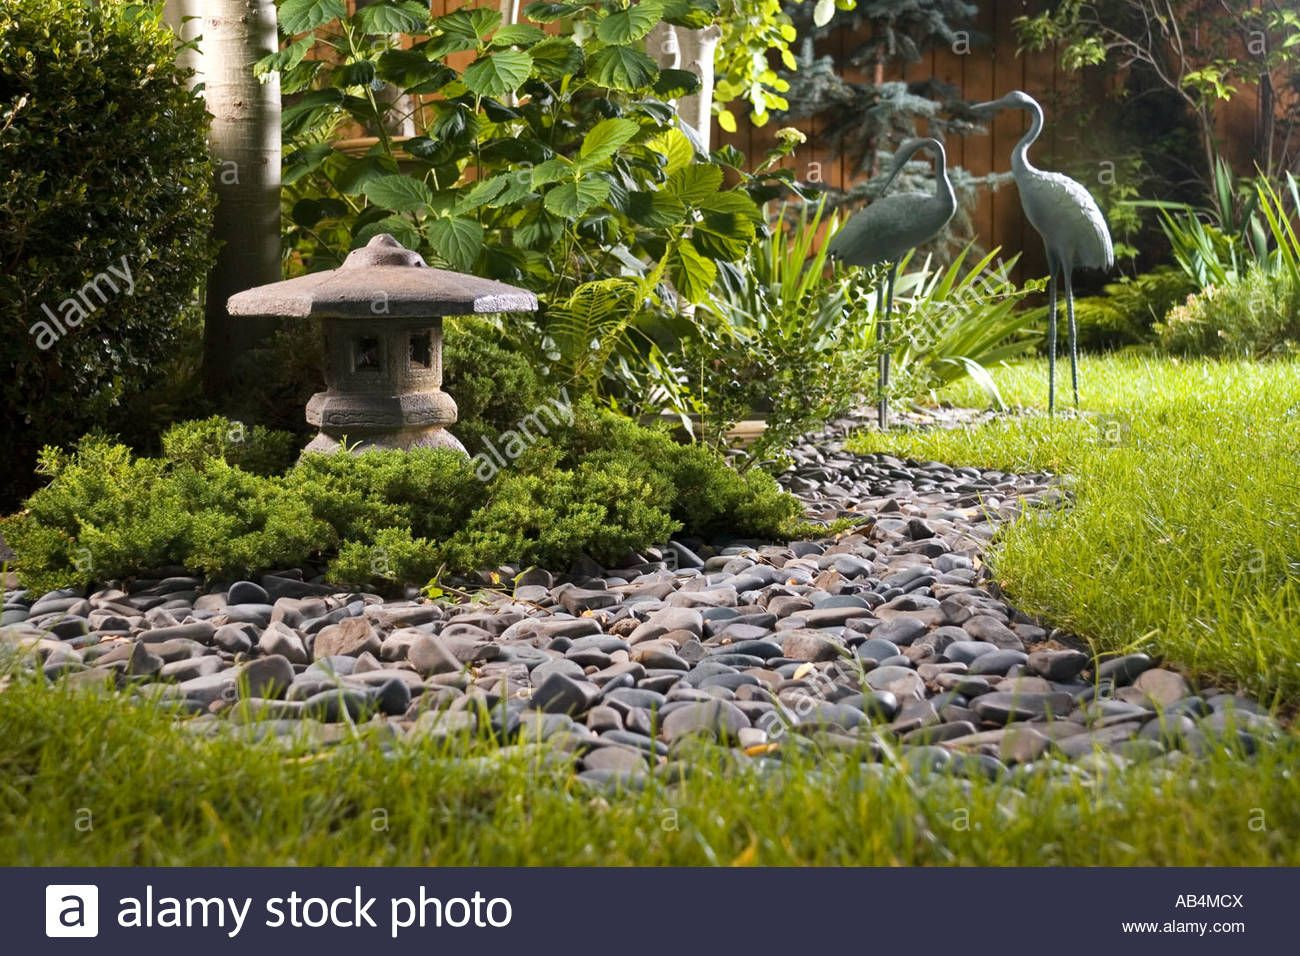 garden cranes. Stock Photo Titled: A Backyard Japanese Garden With Dry Stream Bed, Lantern And Crane Statuary, Unlicensed Use Prohibited Cranes